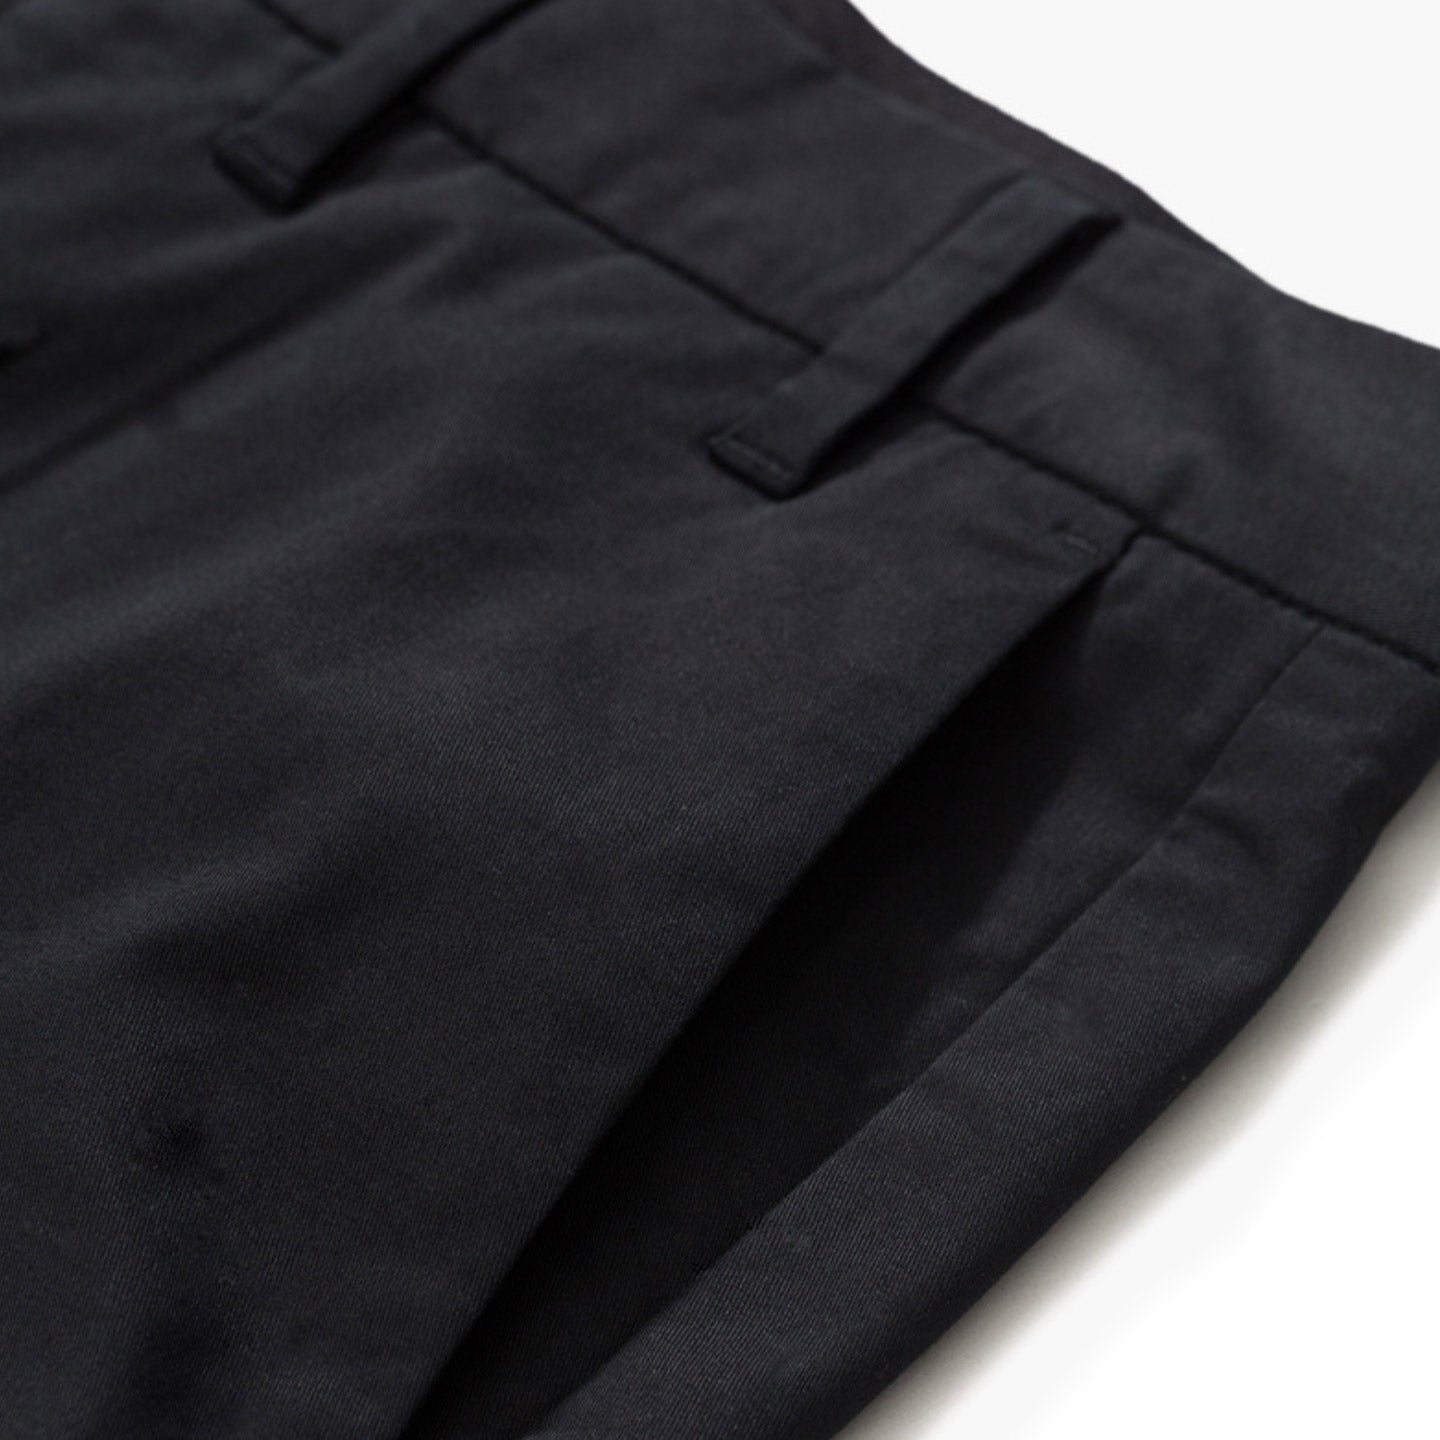 NORSE PROJECTS AROS SLIM LIGHT BLACK